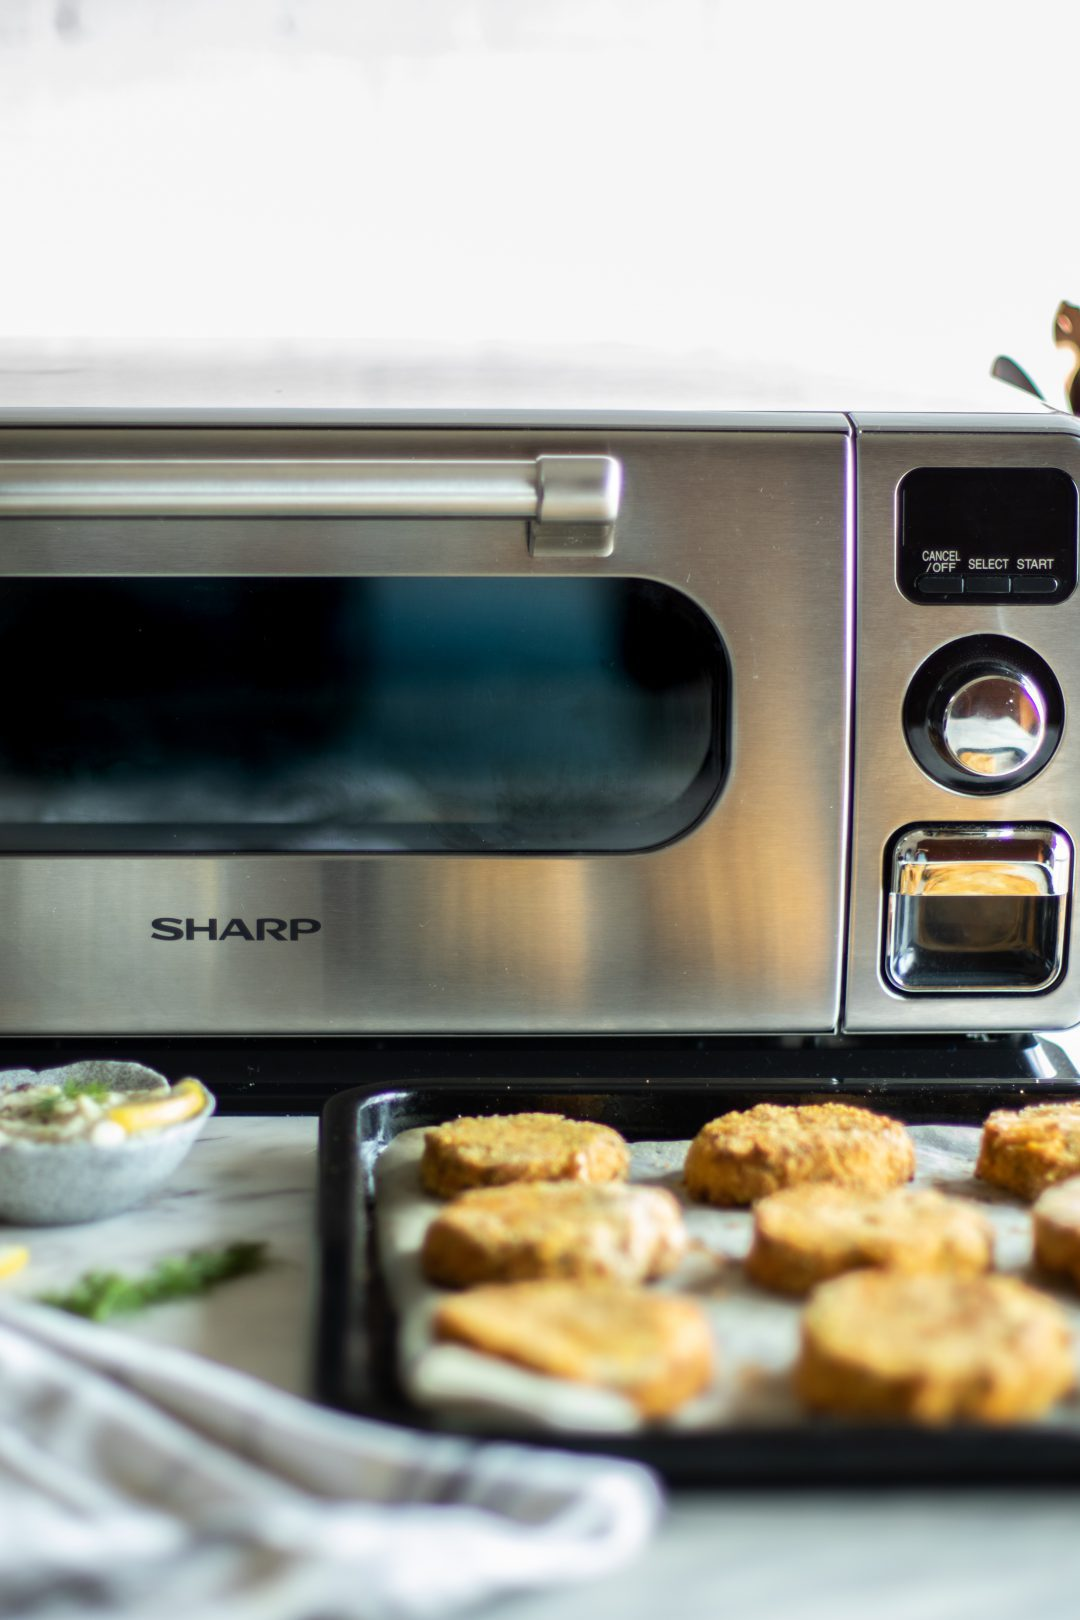 Salmon Sweet Potato Croquettes next to Sharp Superheated Steam Countertop Oven